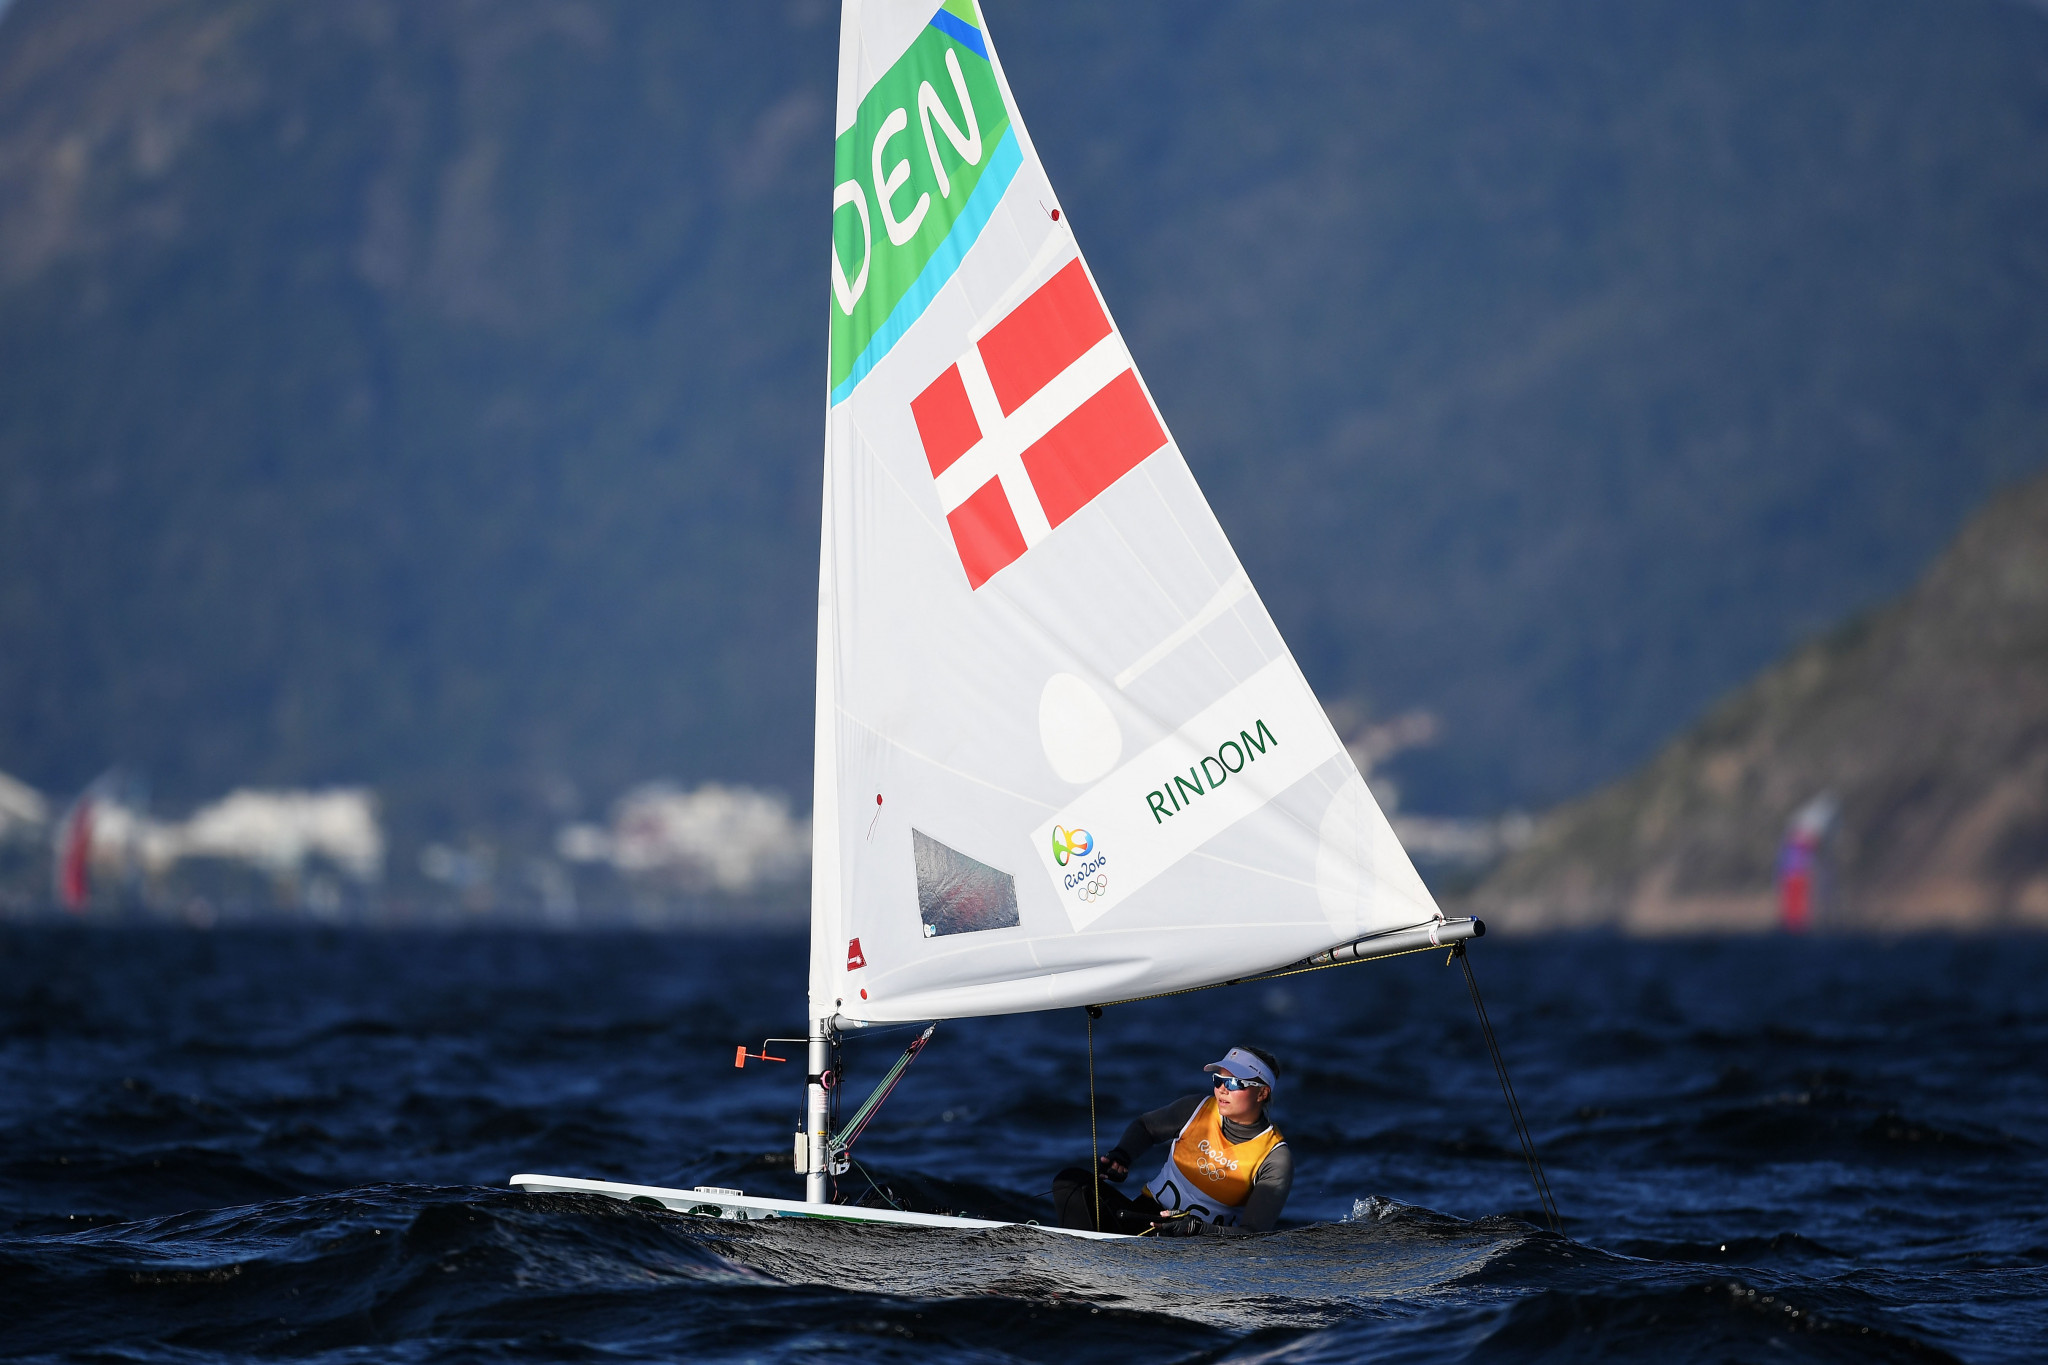 Rindom extends lead at European Laser Championships